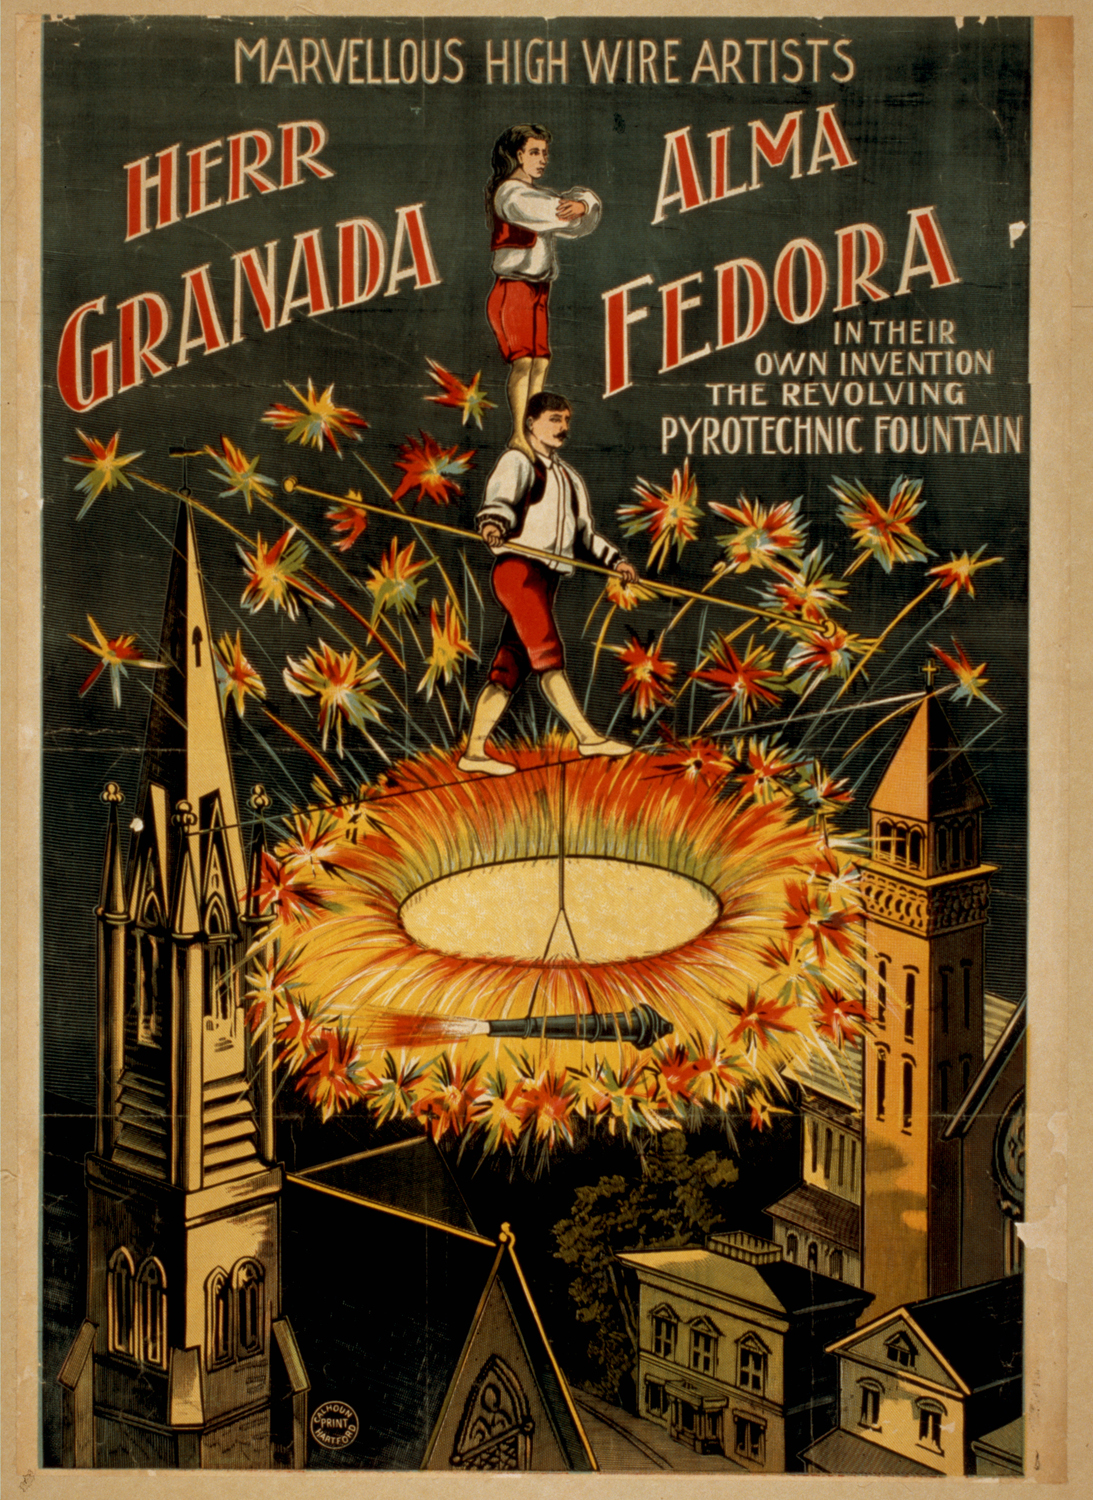 Poster image courtesy of Wikimedia Commons.